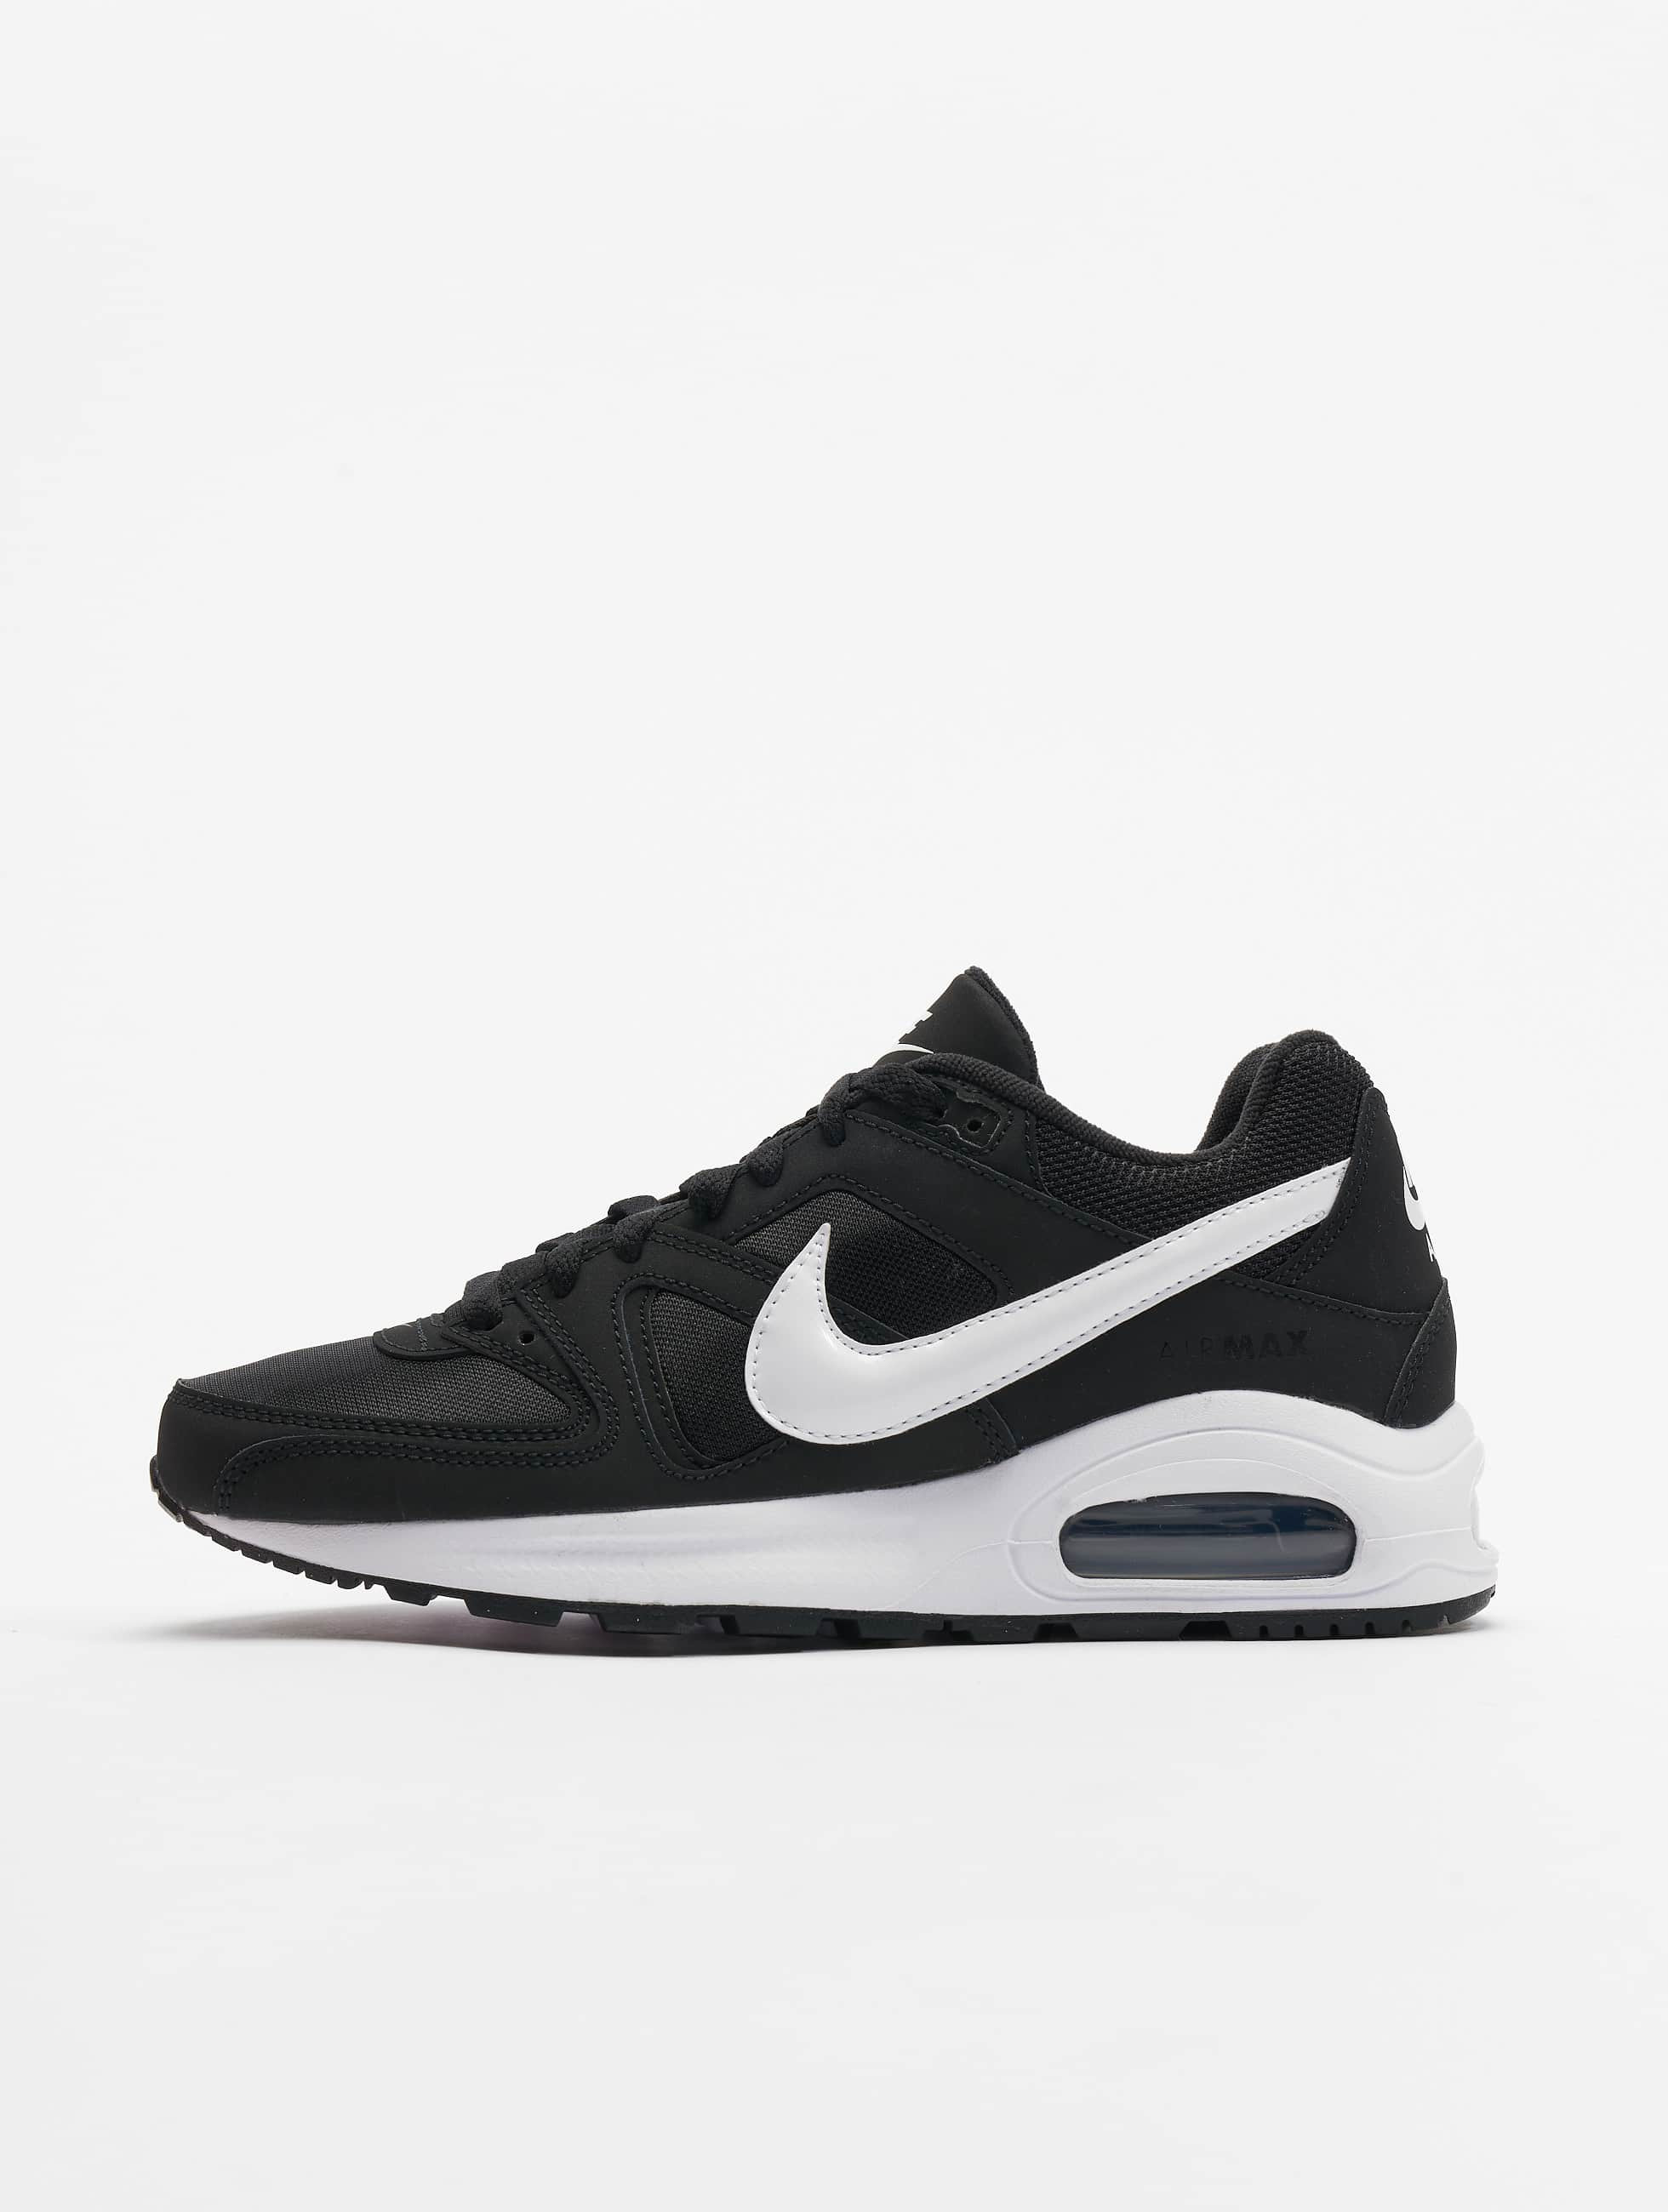 wholesale details for fast delivery Nike Air Max Command Flex (GS) Sneakers Black/White/White